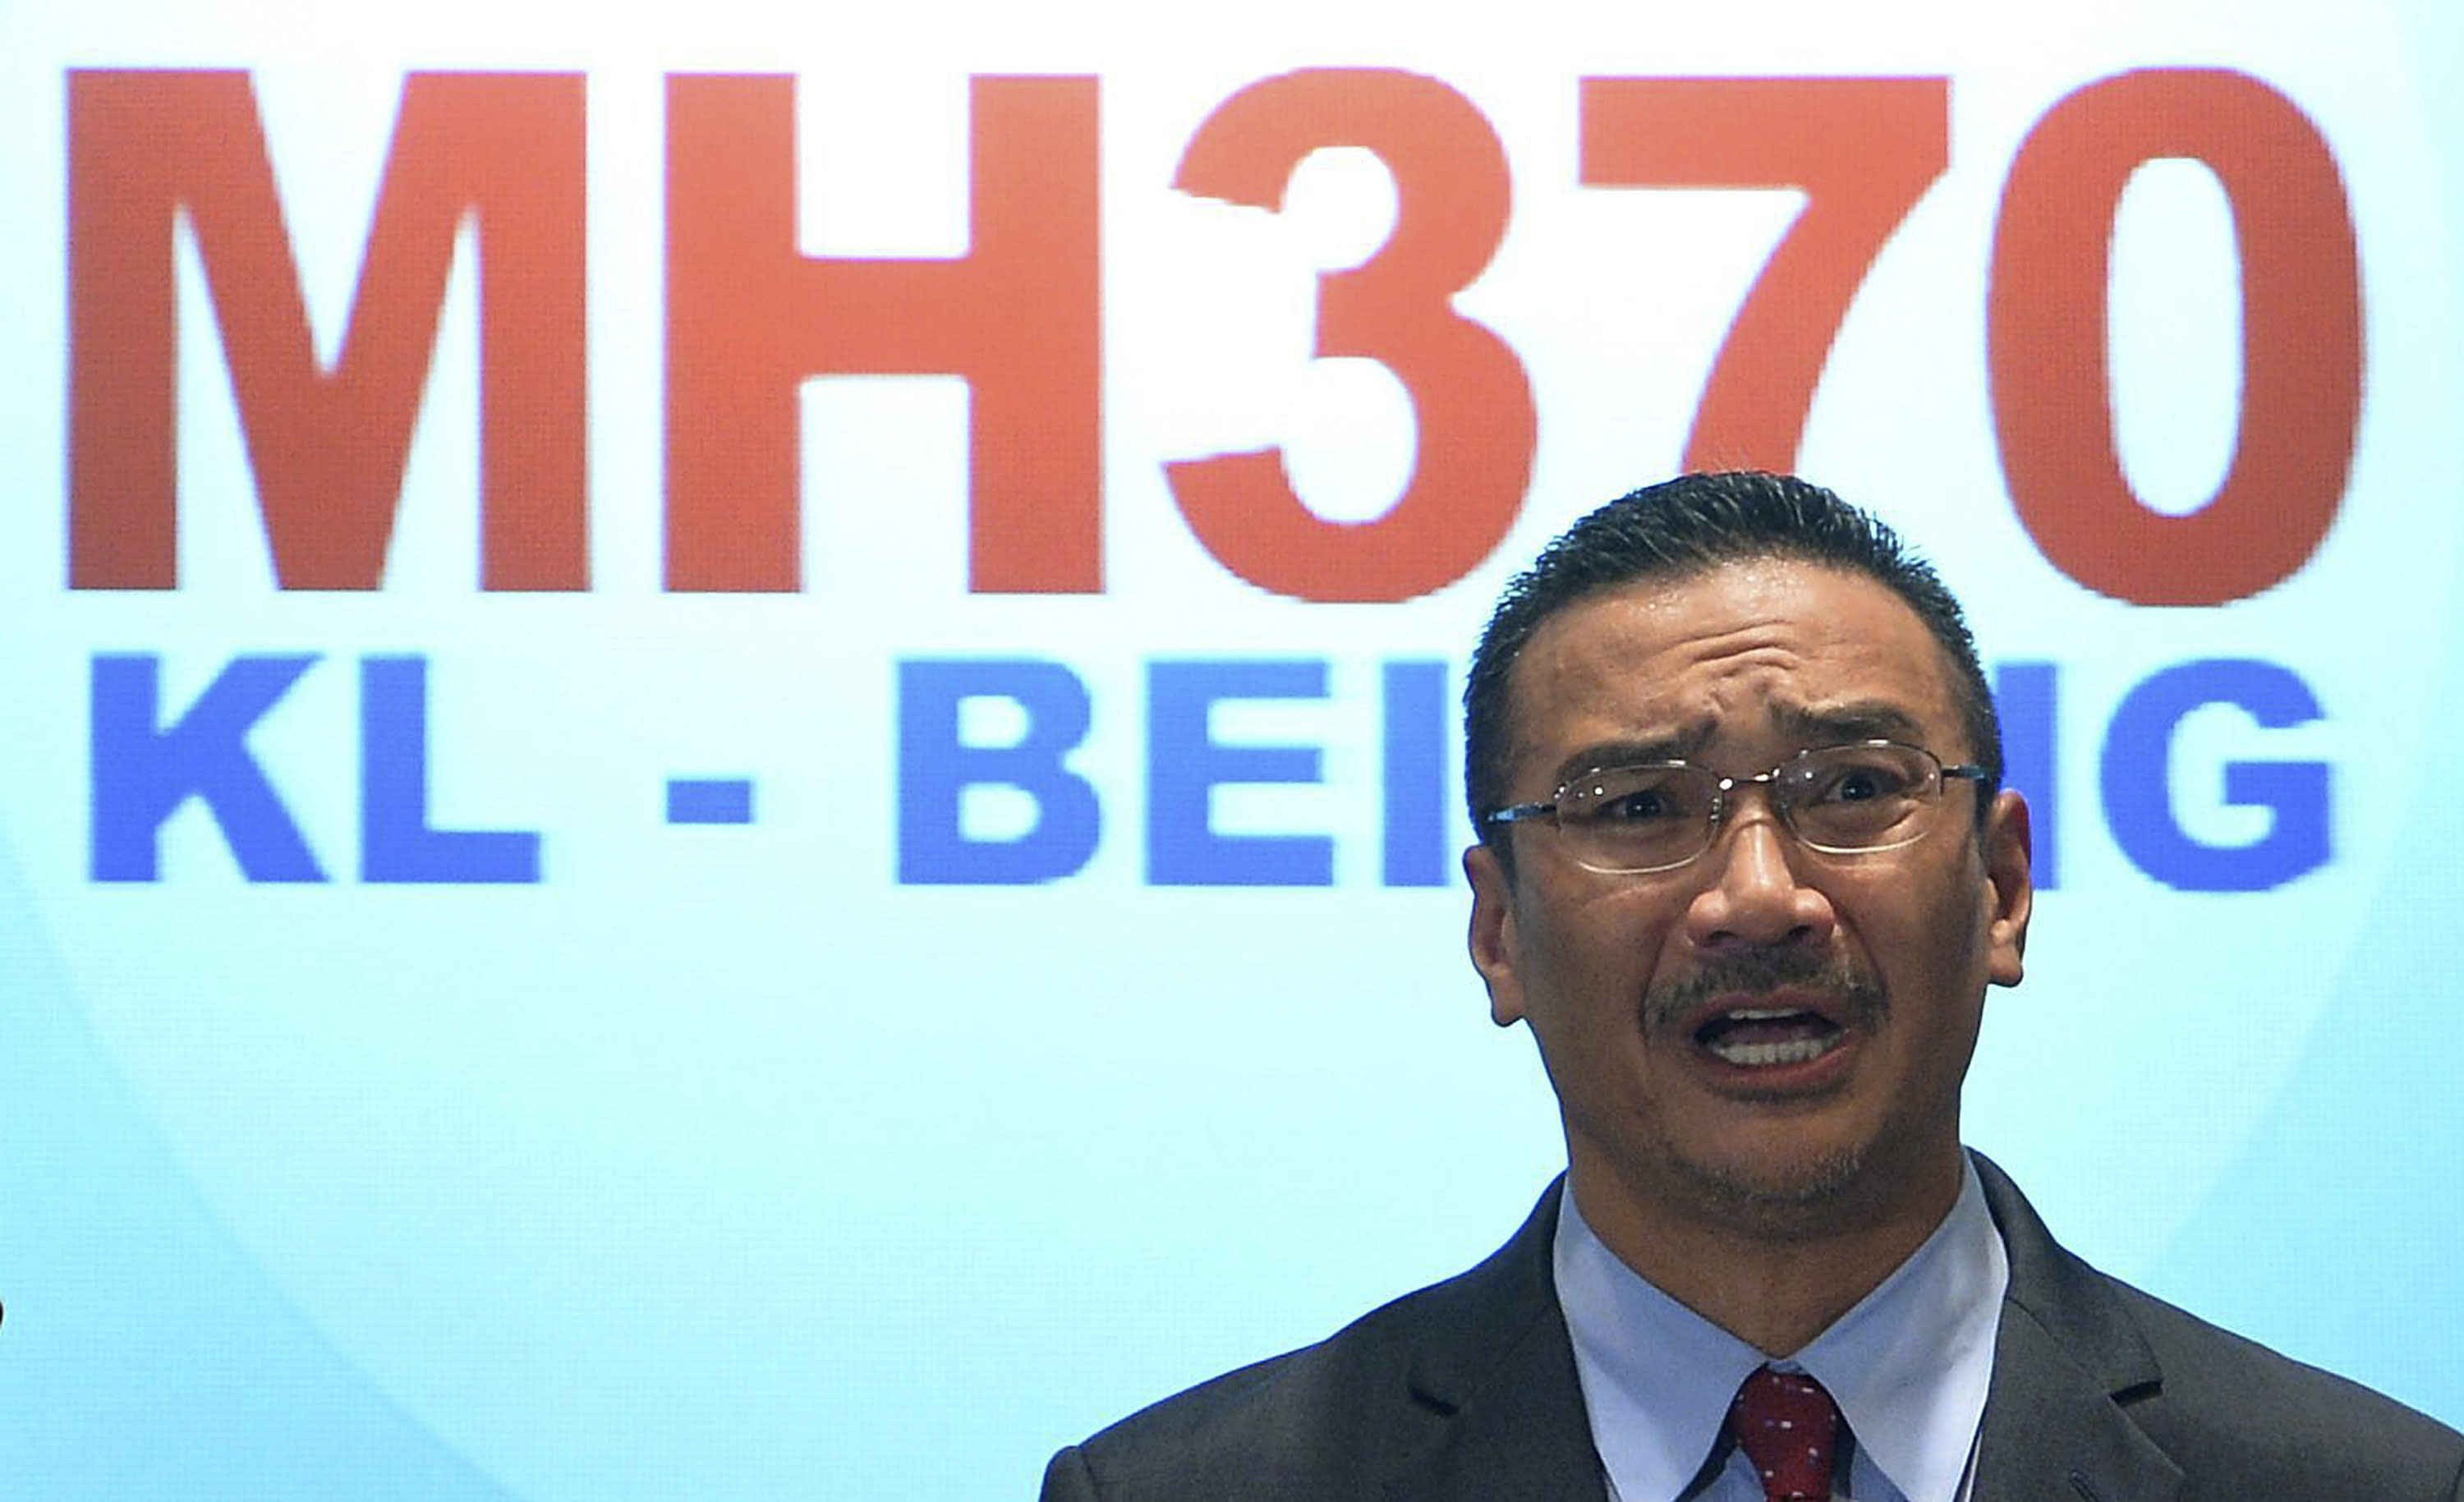 """Malaysian acting Transport Minister Hishammuddin Hussein speaks during a press conference at a hotel in Sepang, Malaysia, Thursday, March 20, 2014. Military search planes flew over a remote part of the Indian Ocean on Thursday hunting for debris in """"probably the best lead"""" so far in finding the missing Malaysia Airlines flight, officials said. (AP Photo) MALAYSIA OUT"""